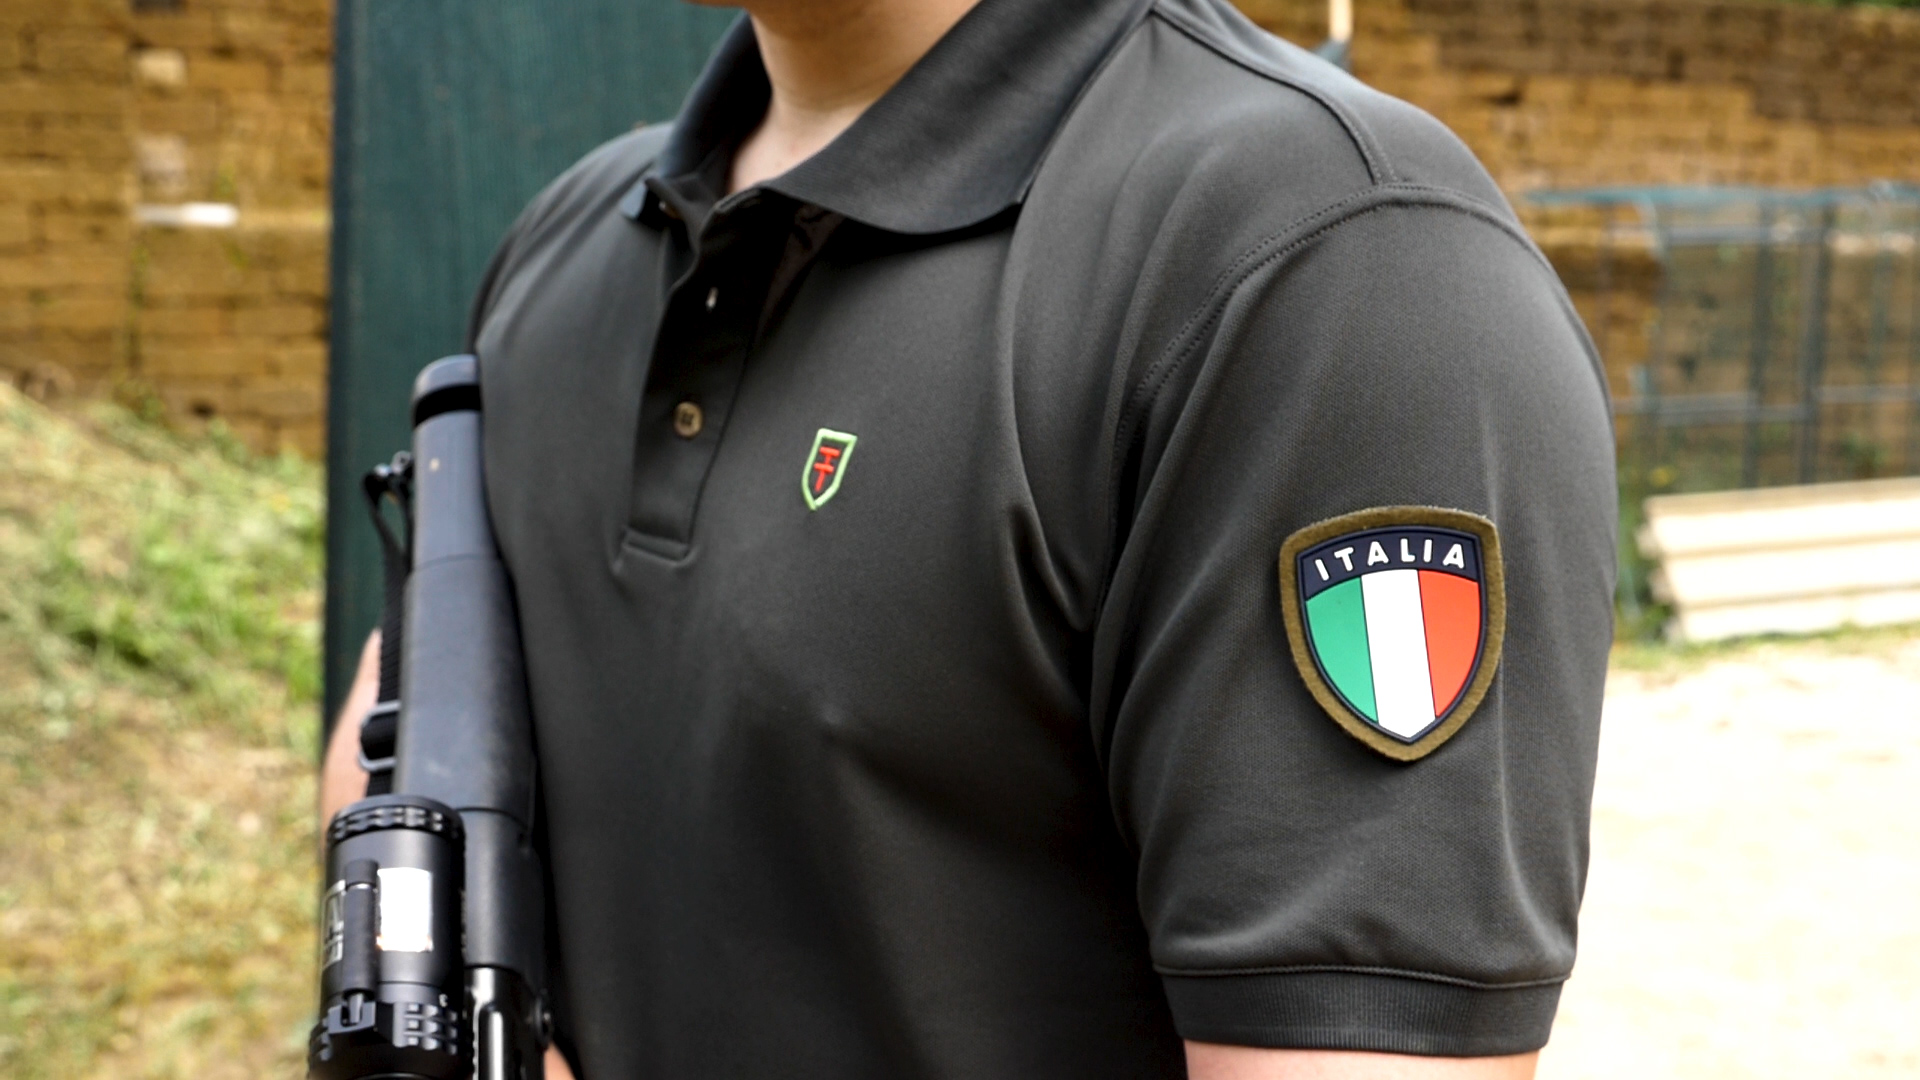 Forcetek polo shirts in Drytek